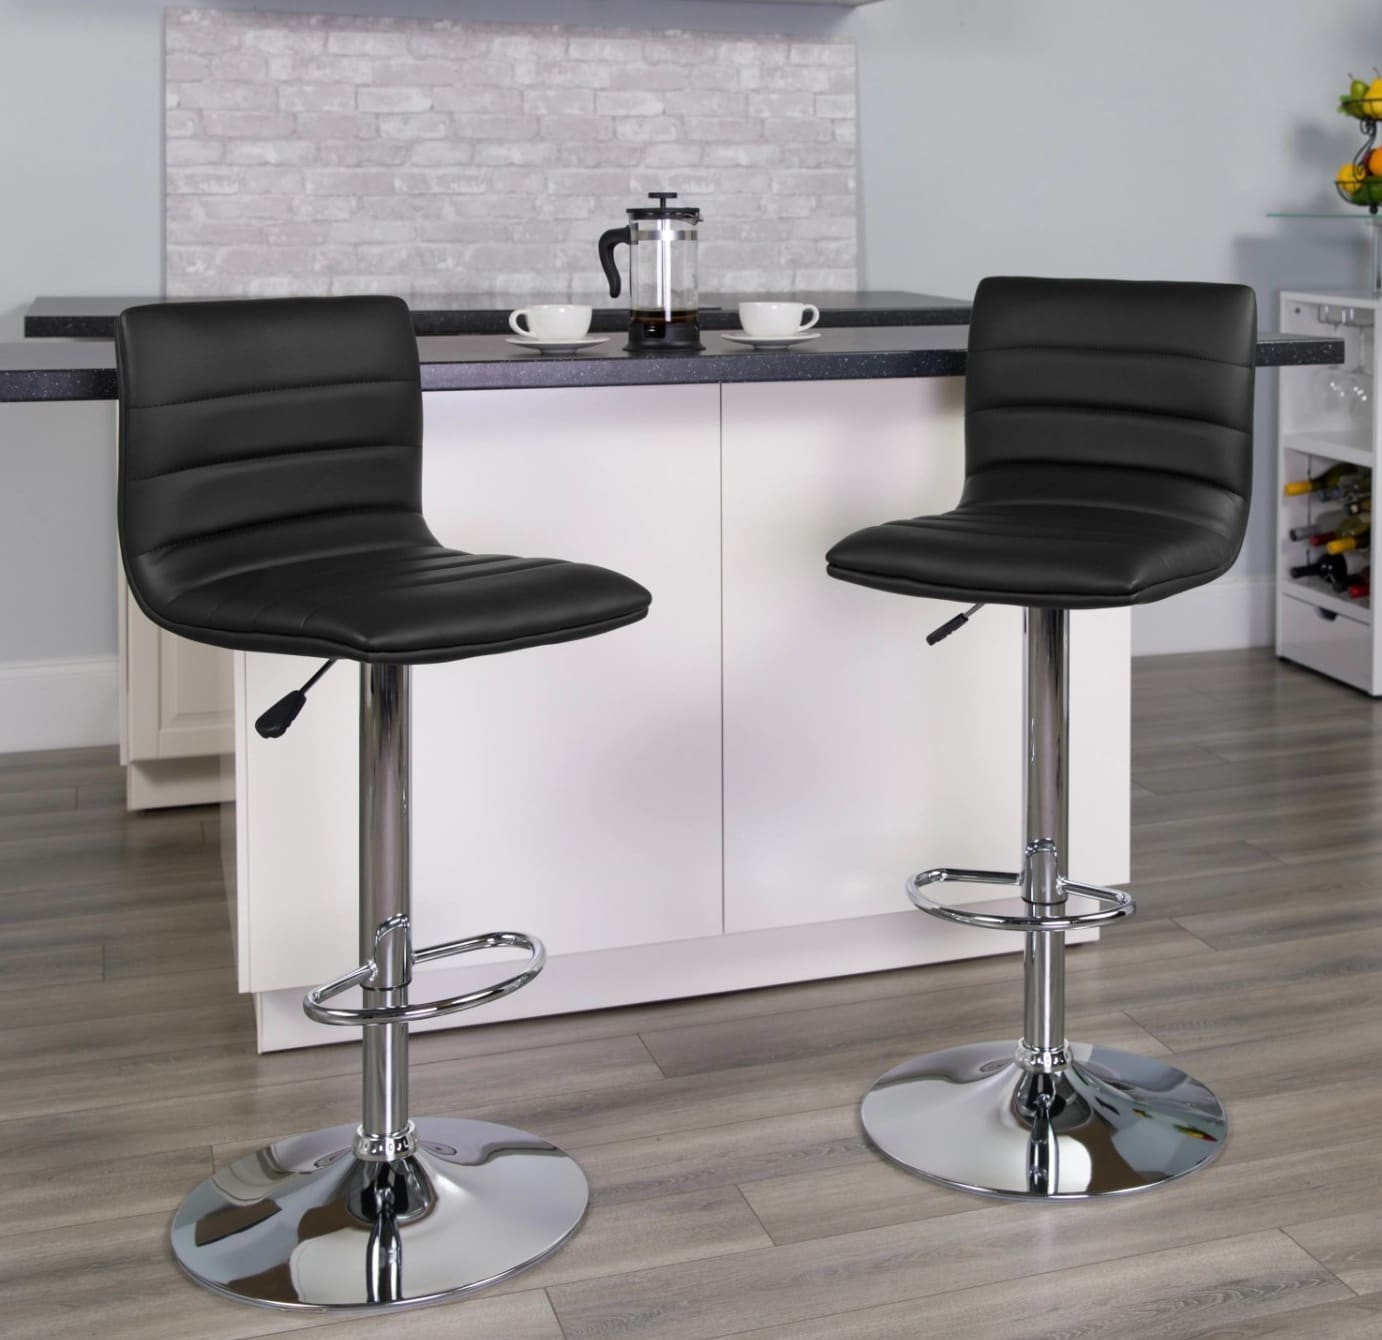 Add a Modern Flair with these Black Kitchen Island Bar Stools